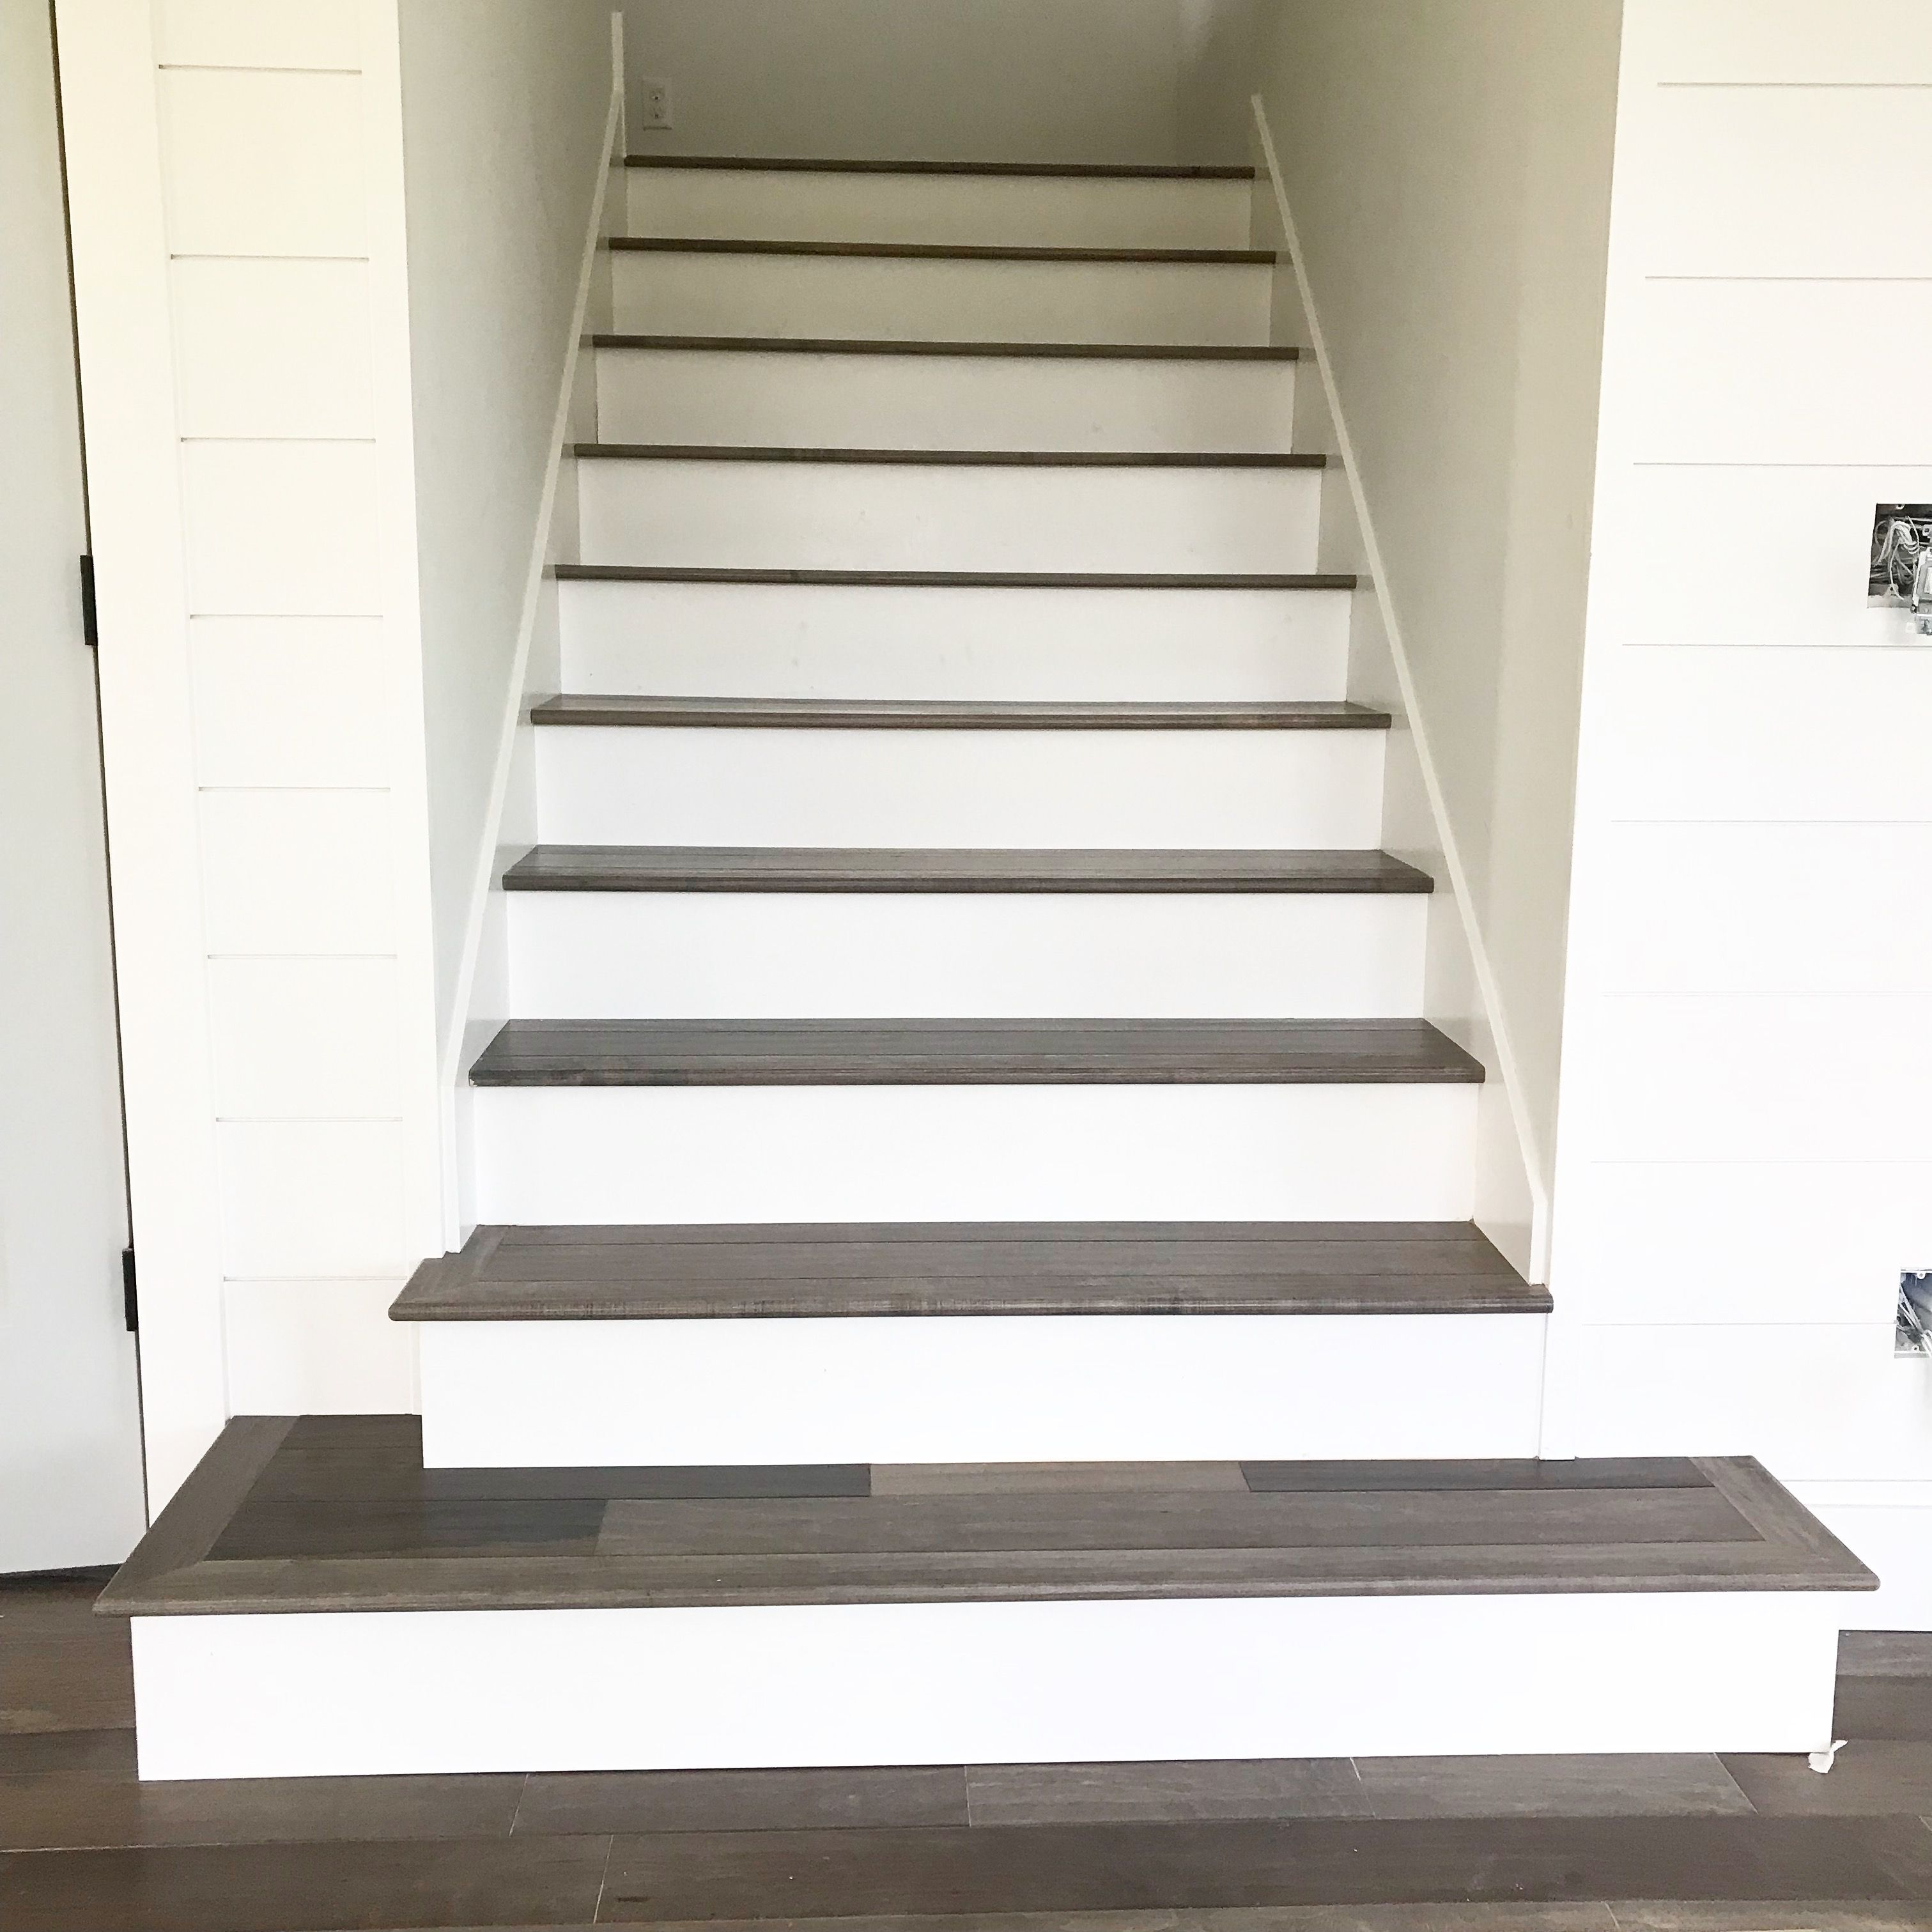 Farmhouse Wood Stairs Hardwood Stairs White Stair Risers Wood | Hardwood Stairs With White Risers | Pine | Tread | Trim | Hardwood Flooring | Before And After